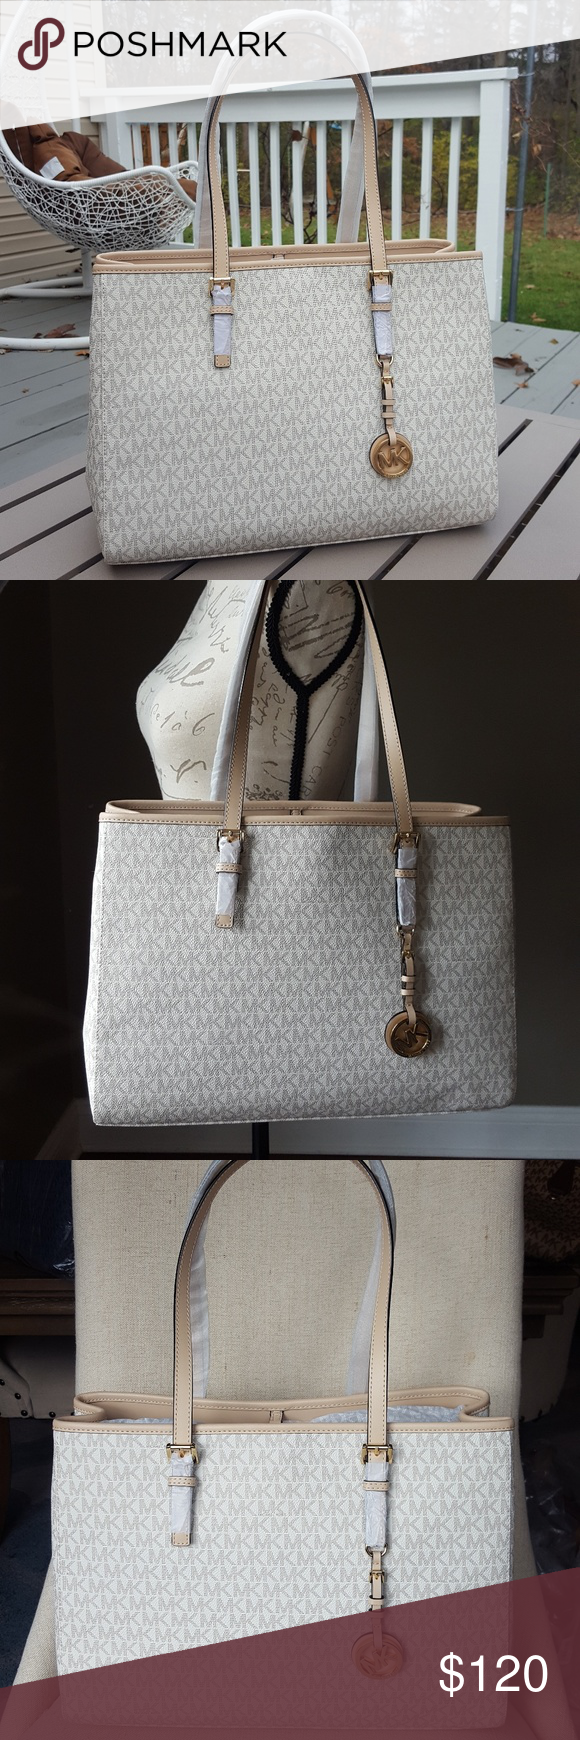 3e0bb60da53b84 NWT Michael Kors jet set travel LG EW tote vanilla FIRM PRICE - THANK YOU  BRAND NEW IN FACTORY WRAPPING 100% guaranteed authentic NWT Michael Kors  large jet ...